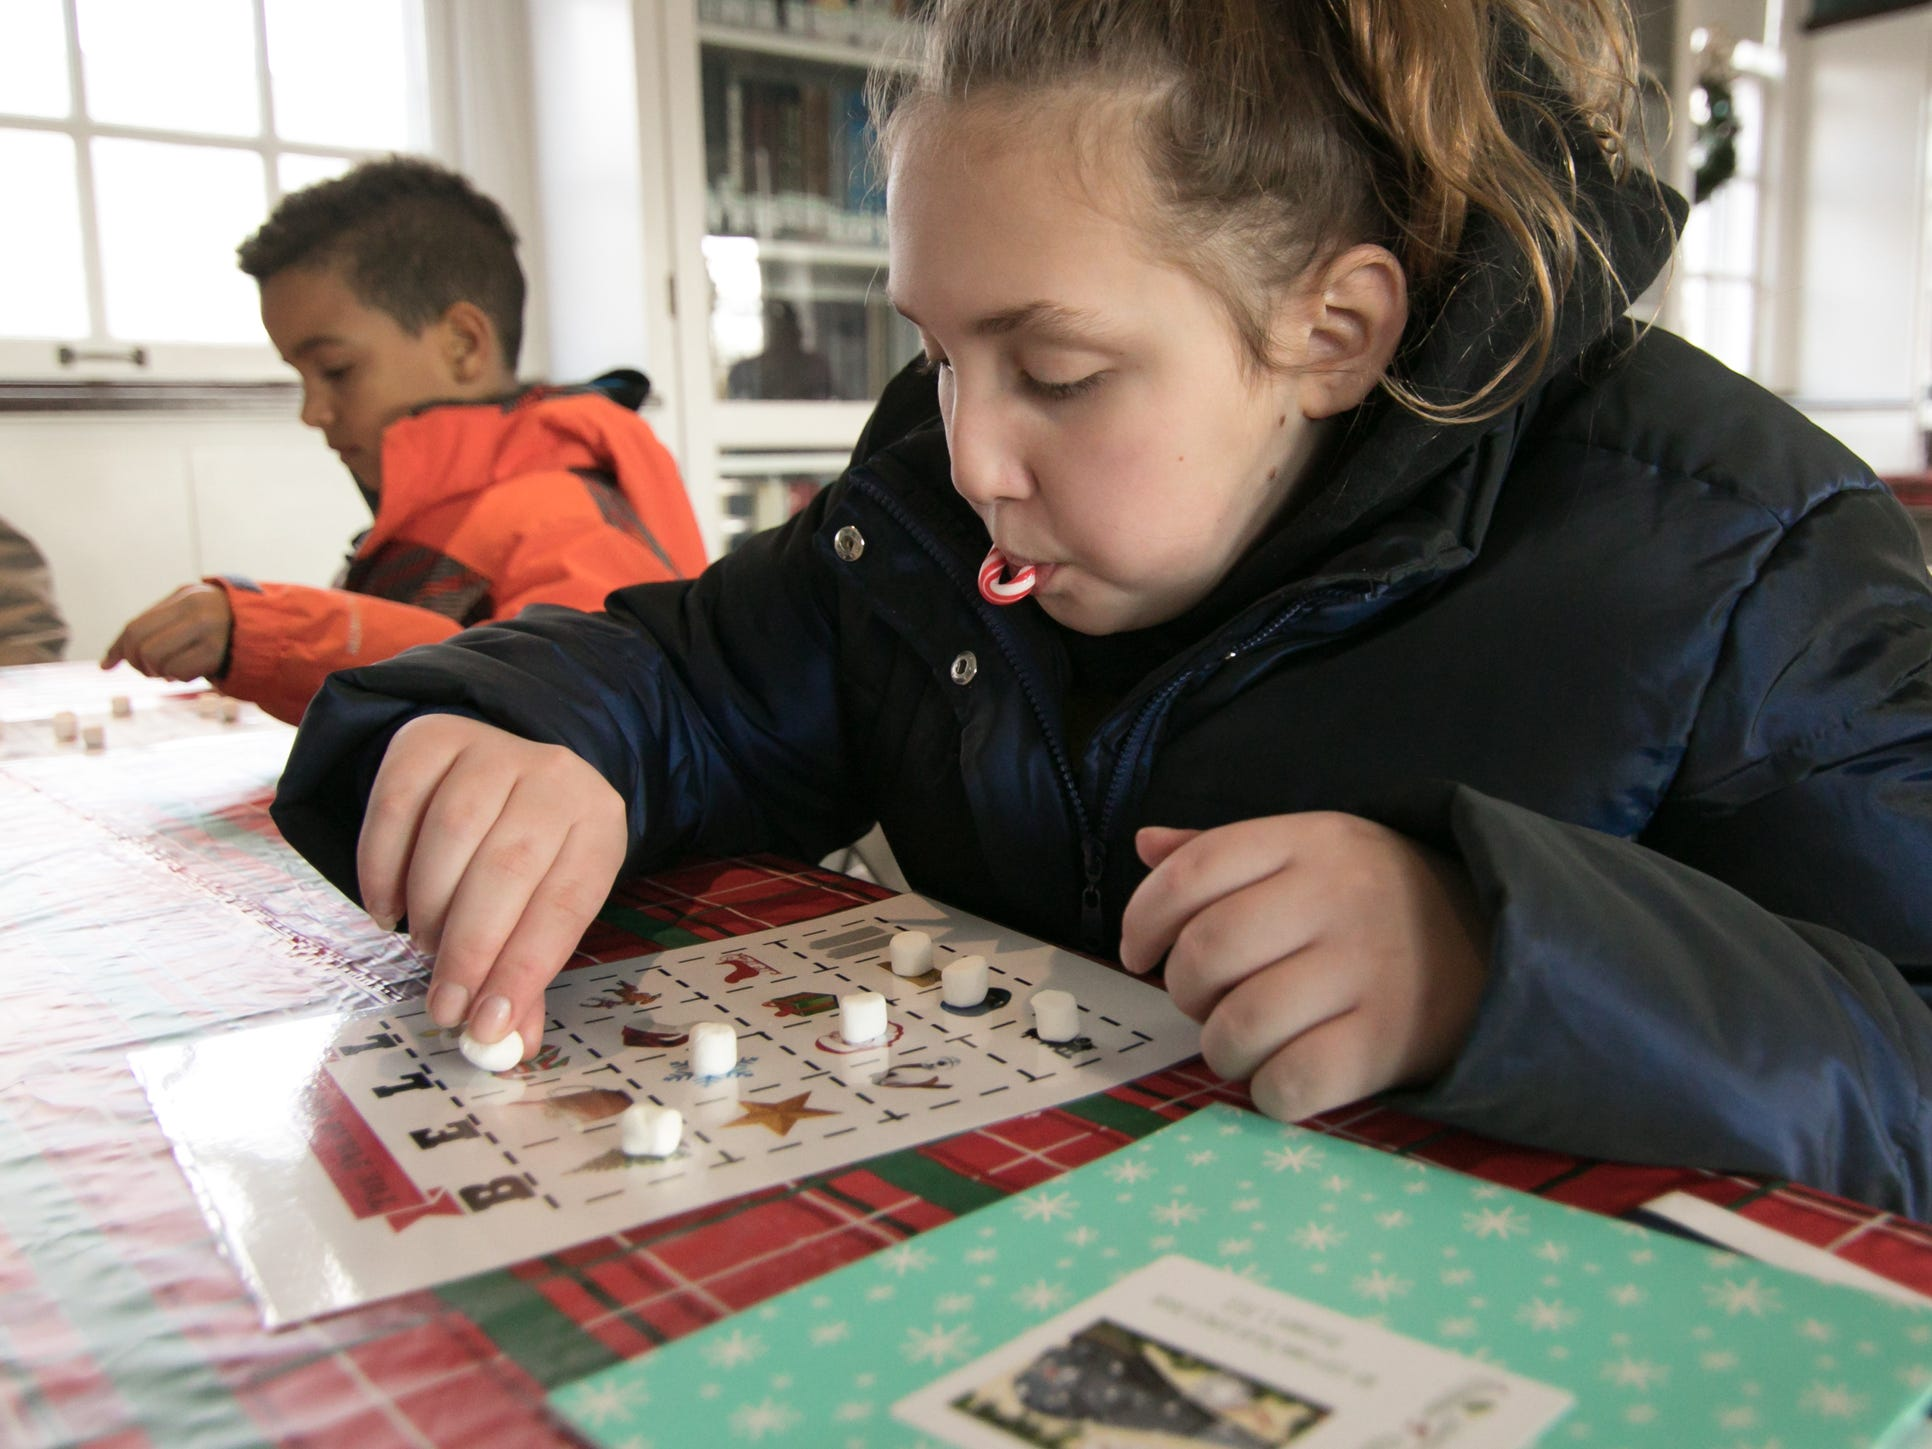 12-year-old Morgan Bertovick plays Bell Bingo with brother 7-year-old Josh Kesselring Saturday, Dec. 8, 2018 in the Hartland Cromaine Library during the Polar Express event.